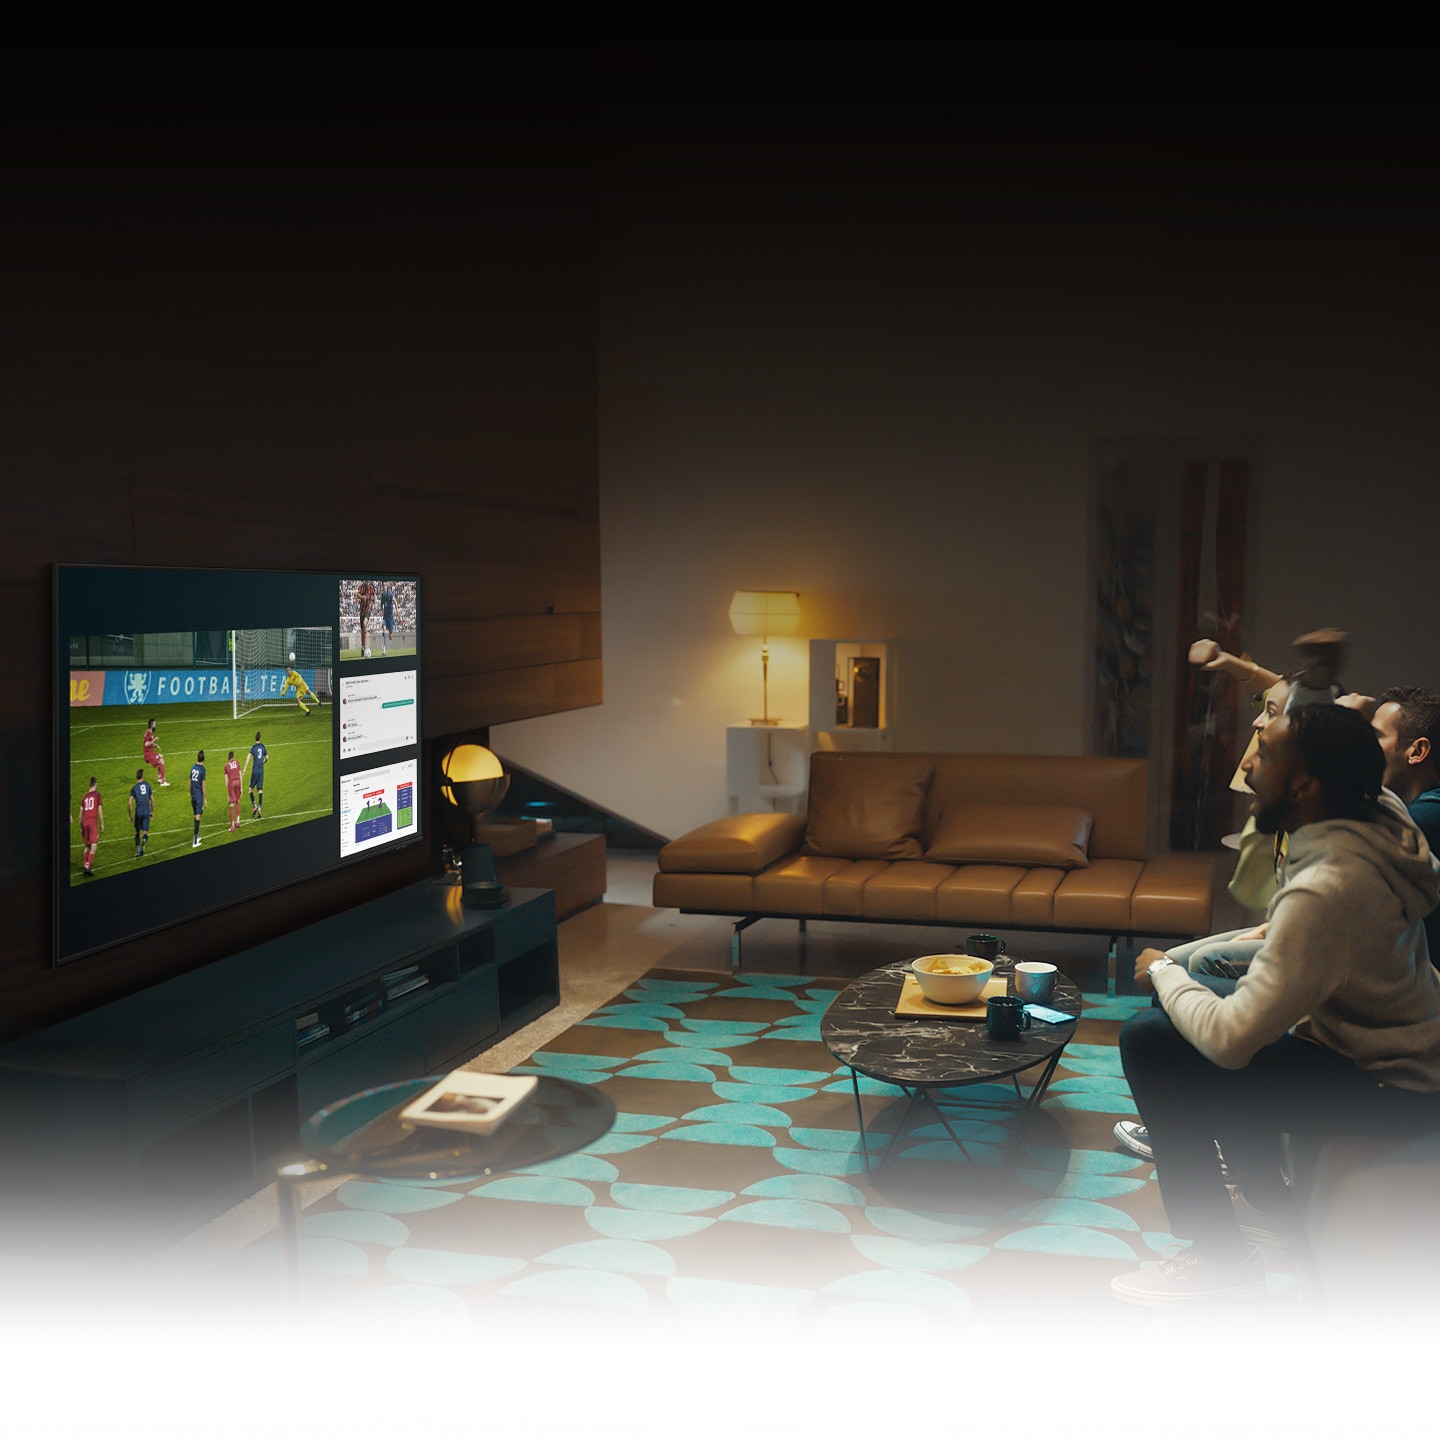 A group of people use QLED TV Multi view feature to enjoy a football match and view play-by-play information at the same time on the same screen.